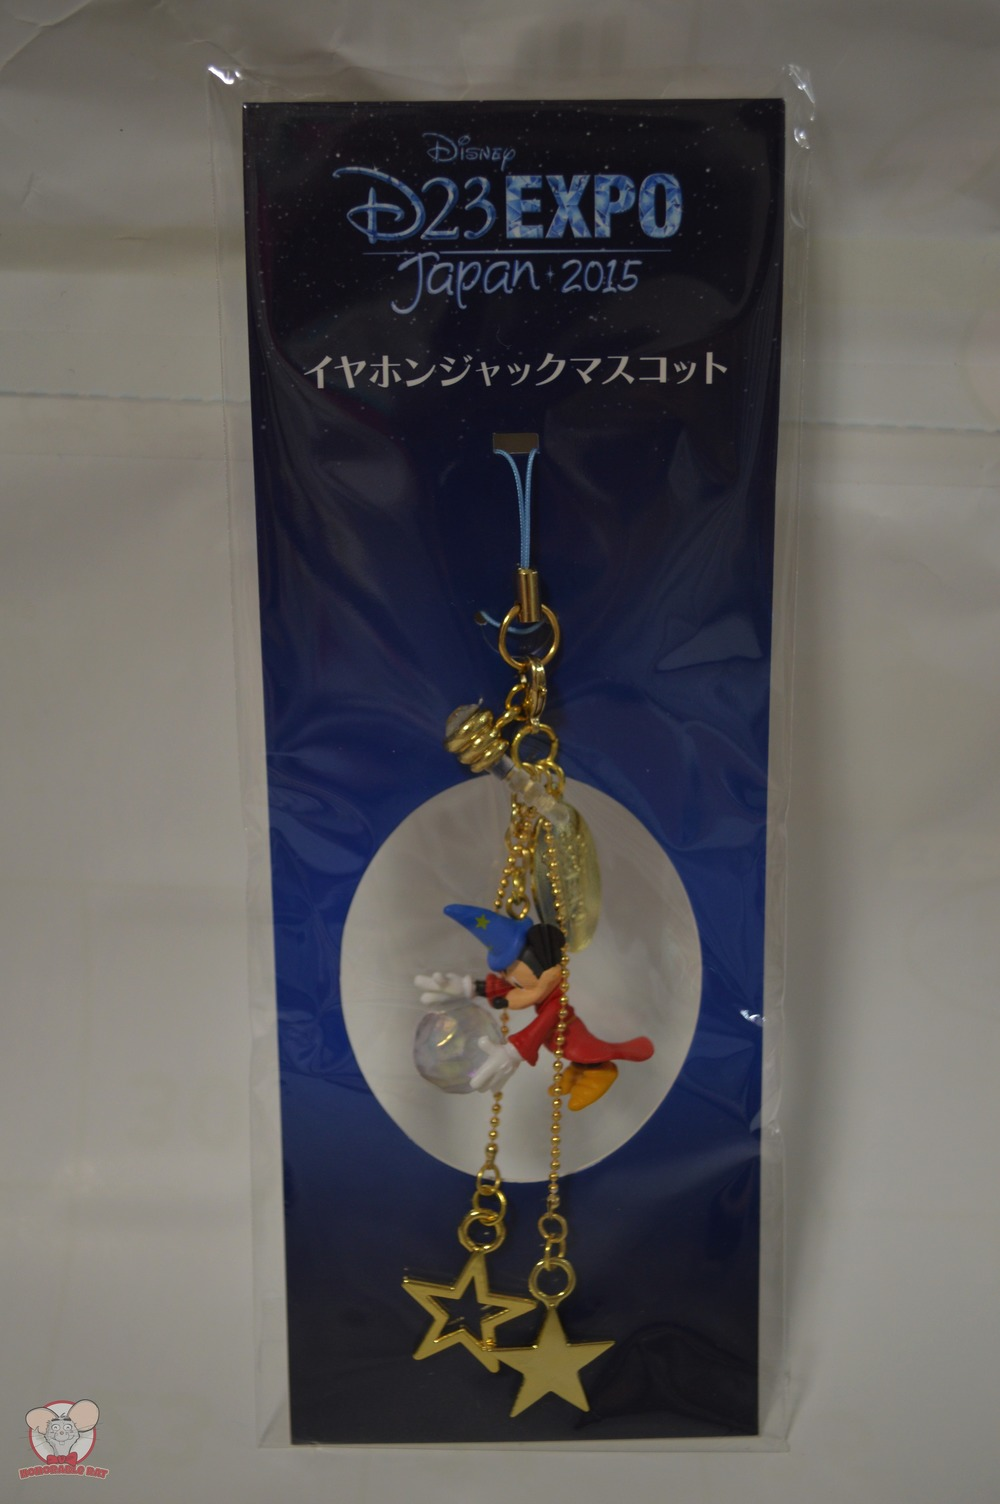 D23 Expo Japan 2015 Smart Phone Chain